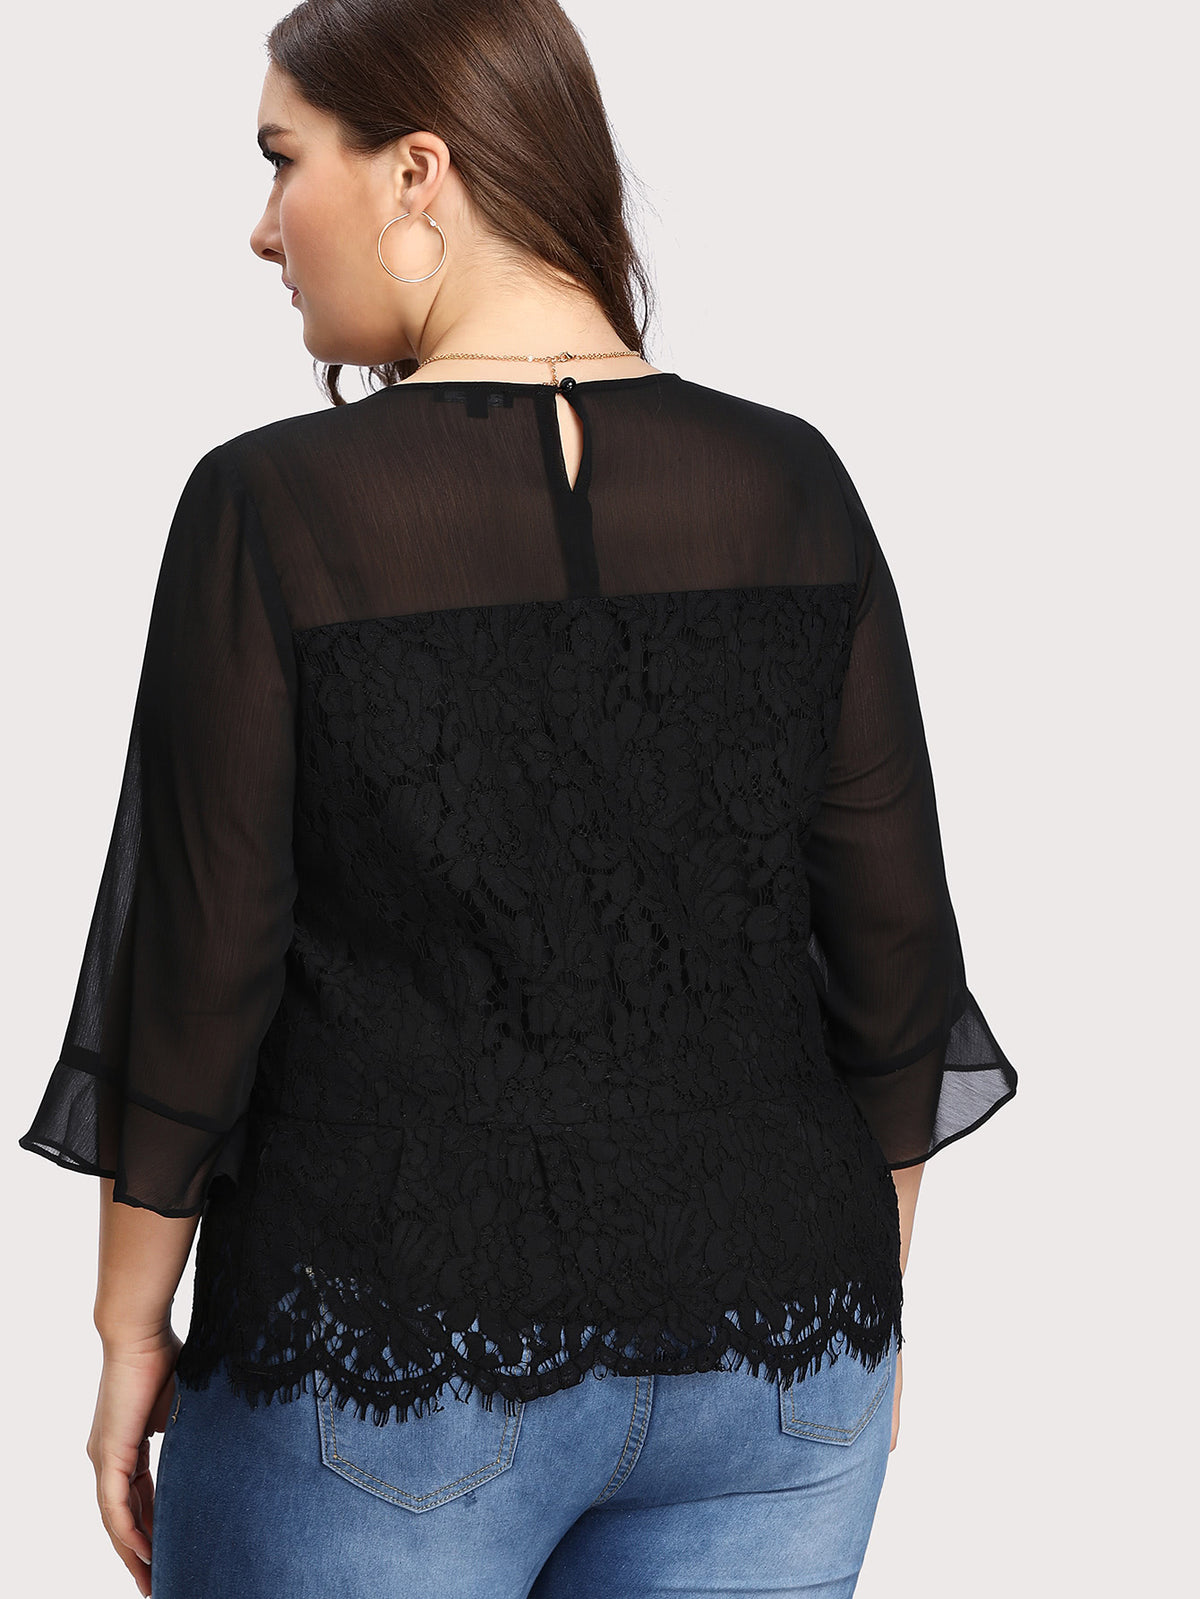 Illusion Neck Floral Lace Overlay Top